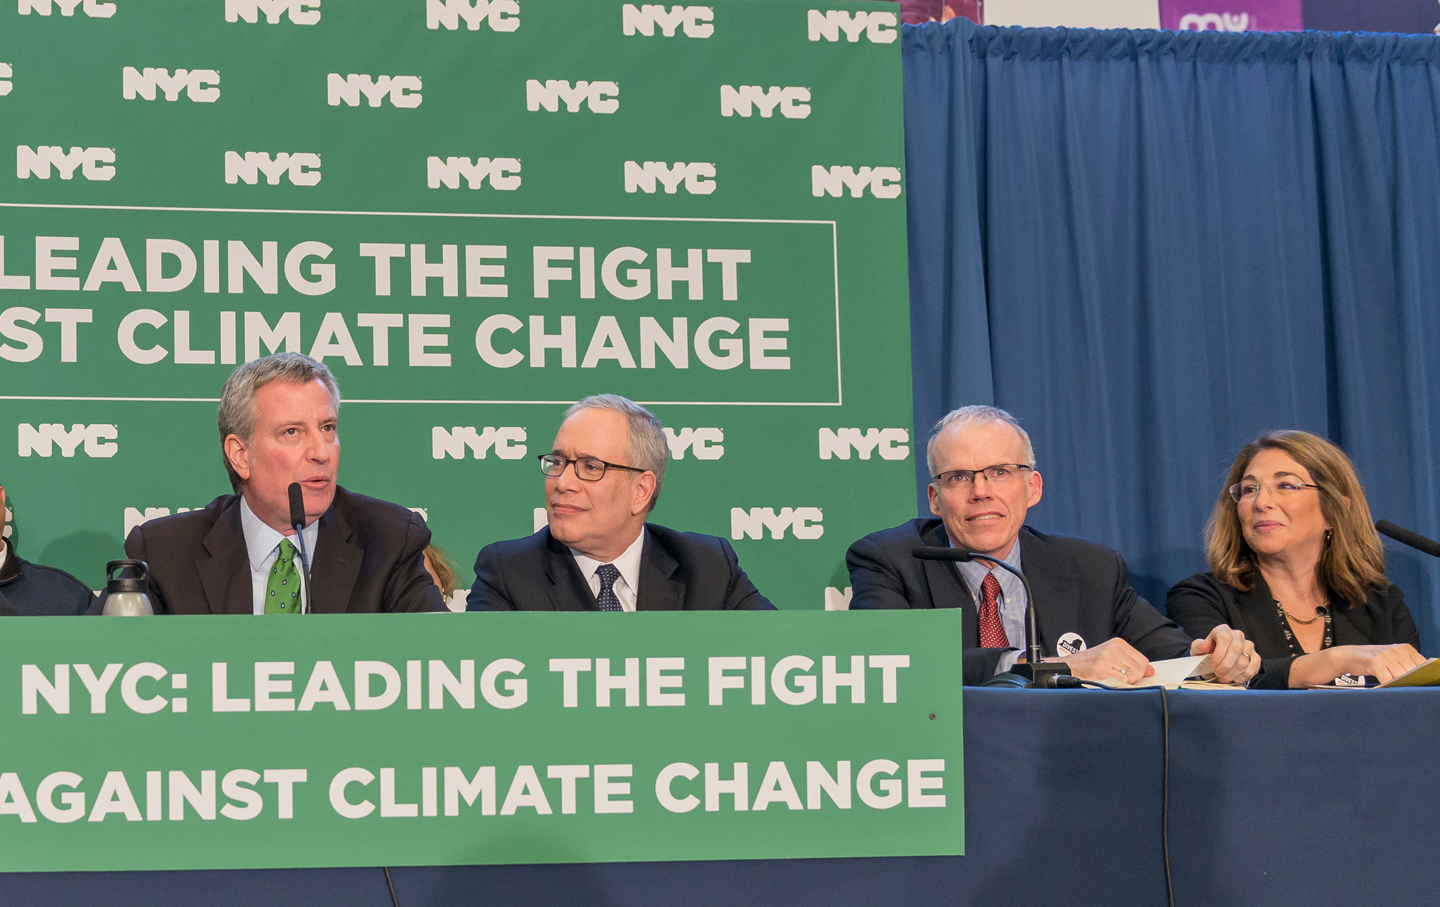 NYC sues oil companies over climate change